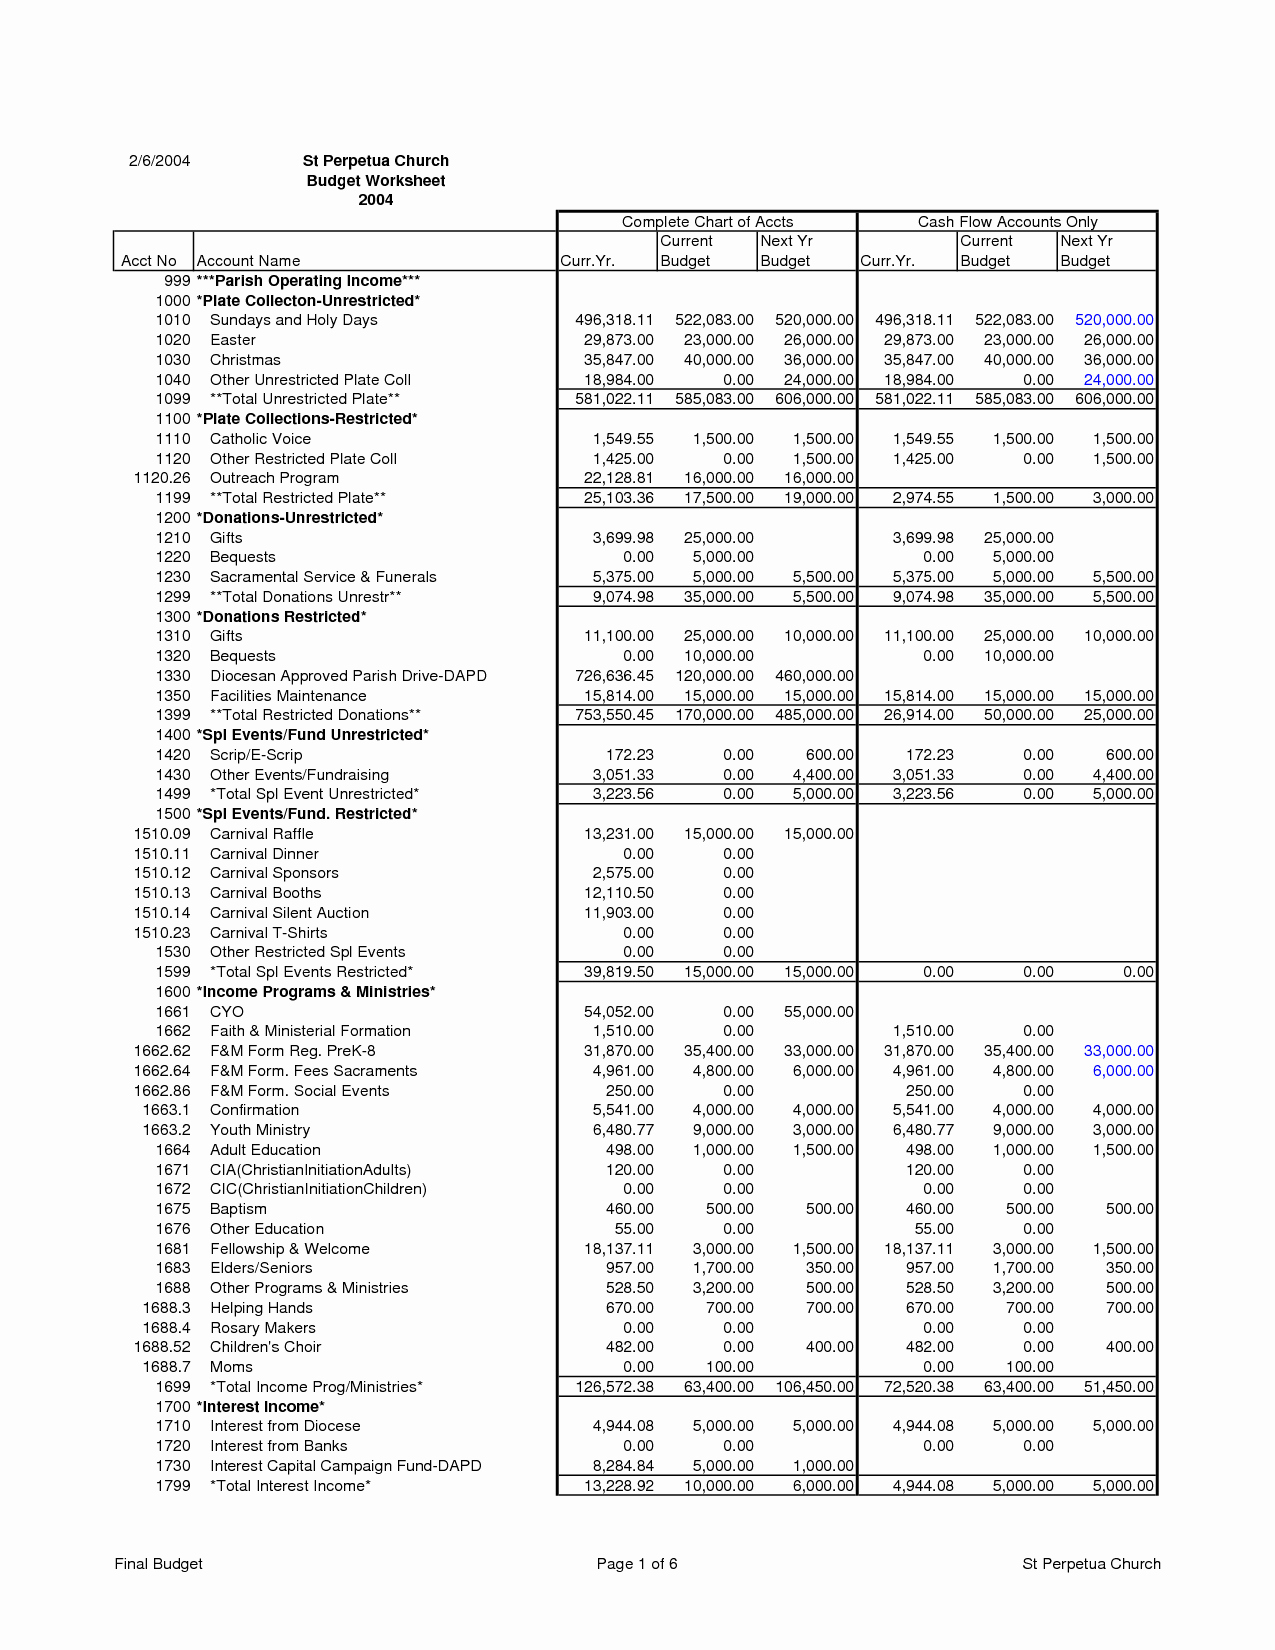 Church Budget Excel Template Luxury Sample Church Bud Worksheet and Sample Church Budget Spreadsheet